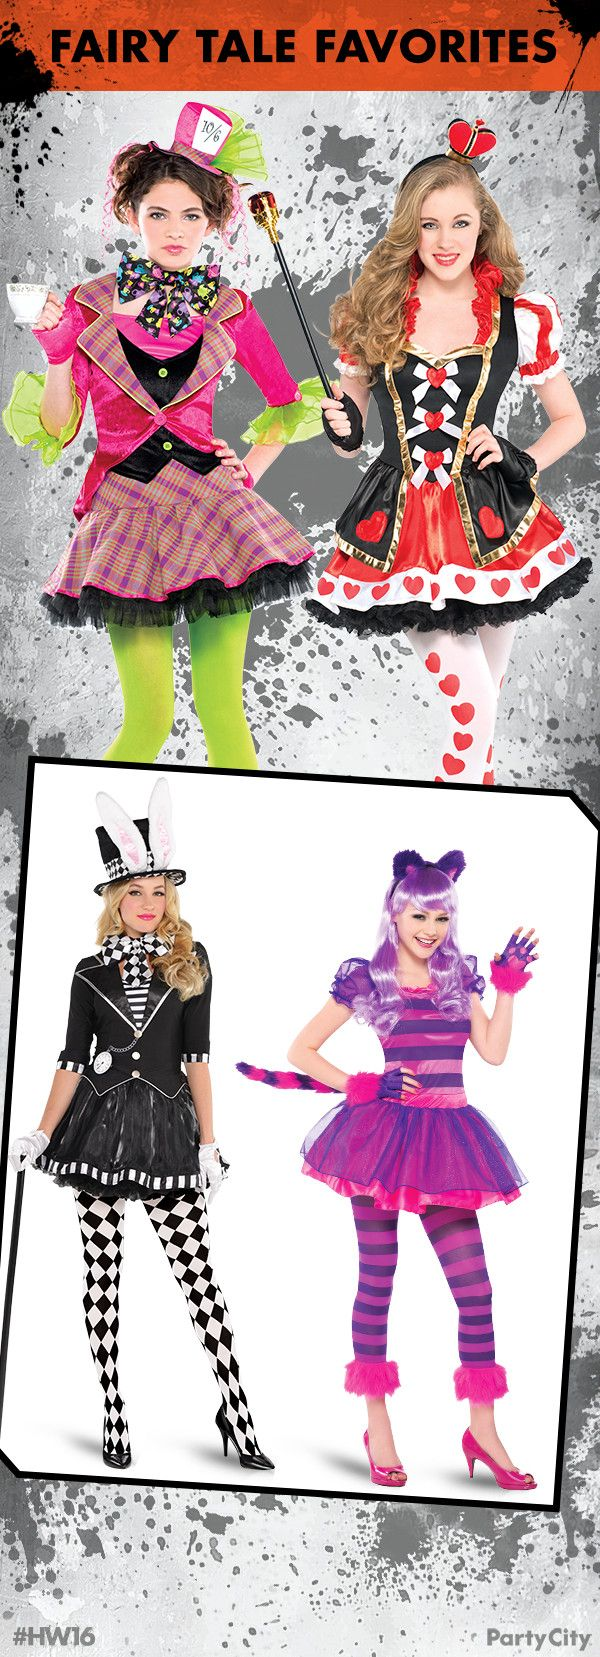 This Halloween, thrillerize your Fairy Tale costumes by